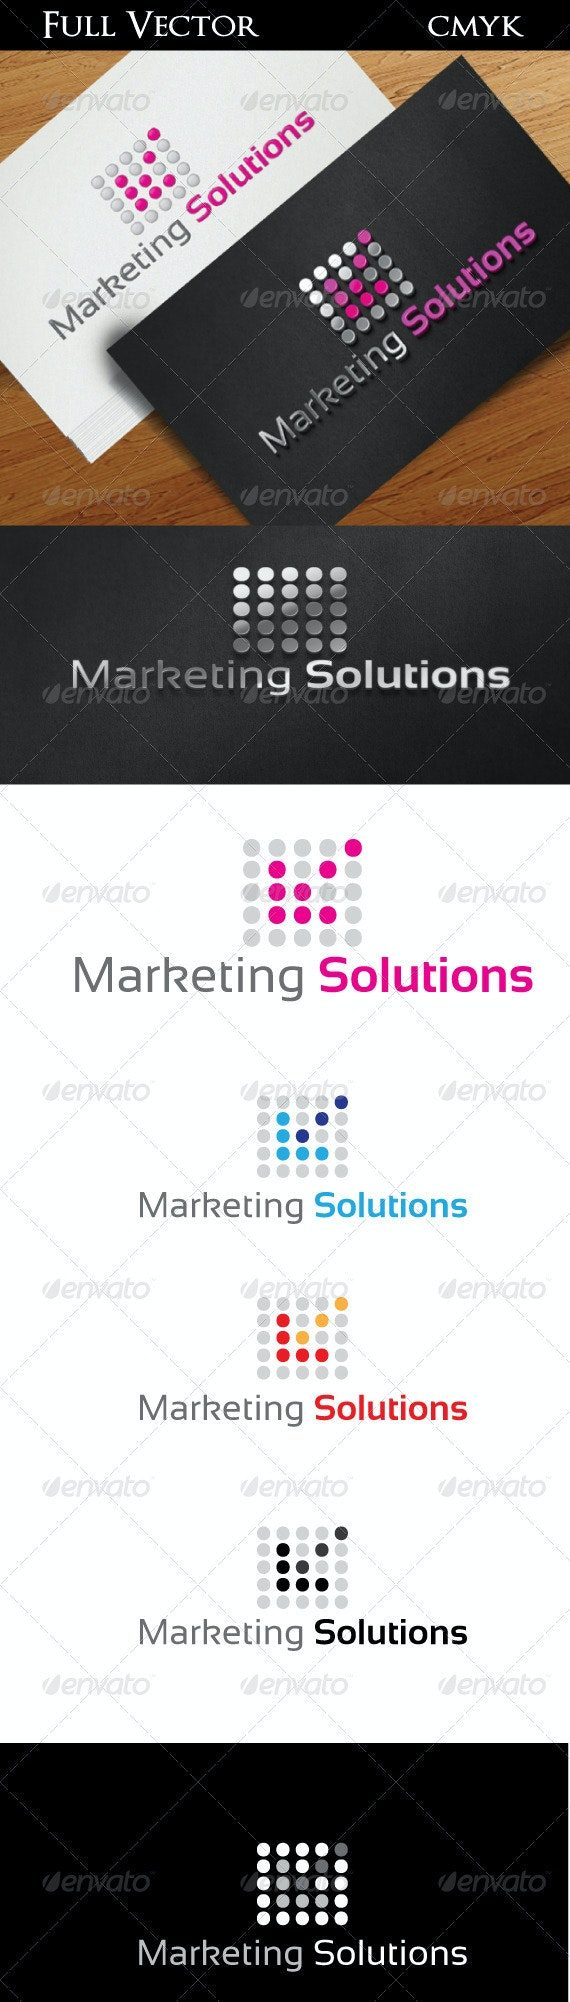 Marketing Solutions - Vector Abstract